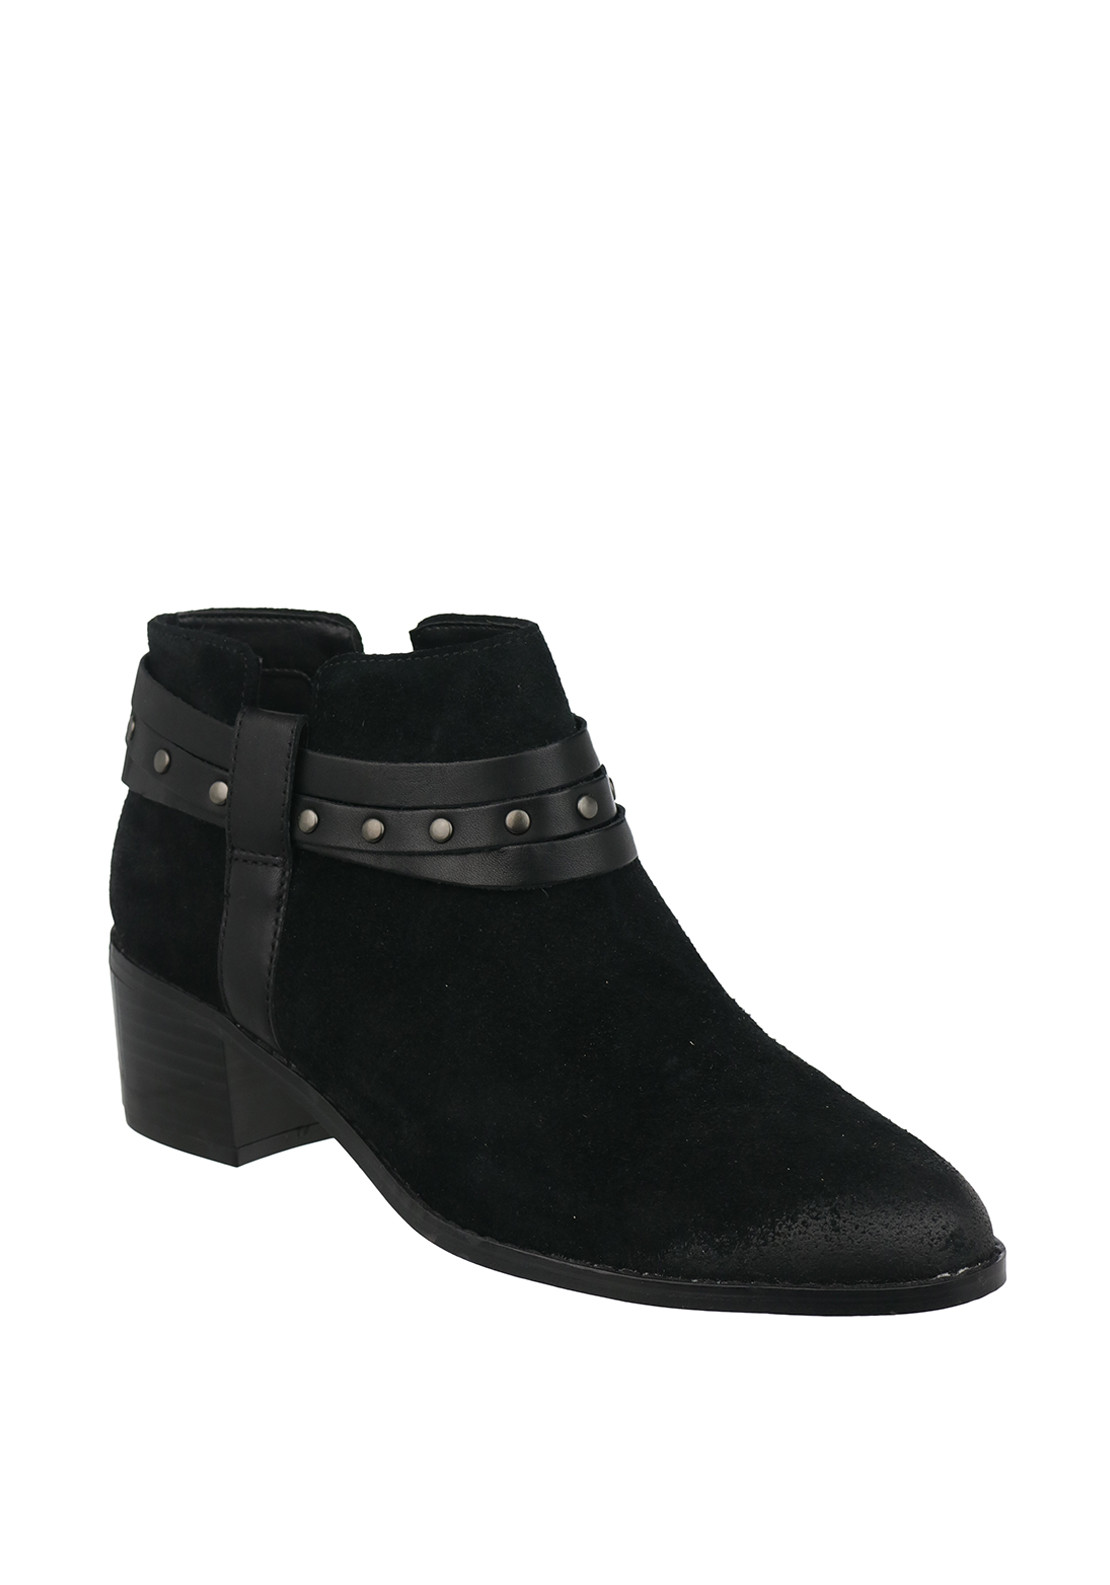 Clarks Womens Breccan Shine Suede Strappy Ankle Boots, Black